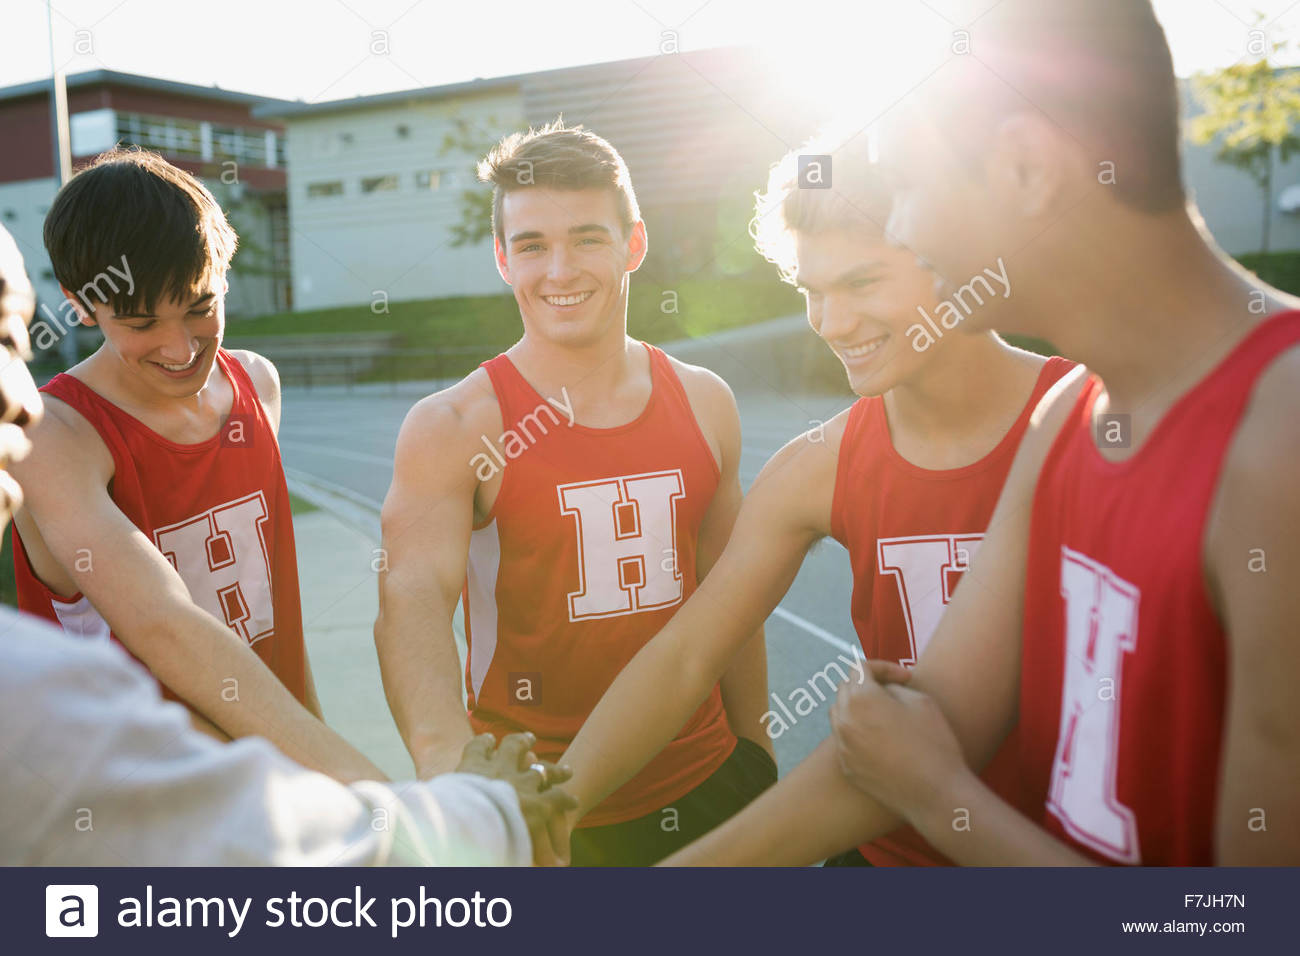 High school track and field team huddle Banque D'Images